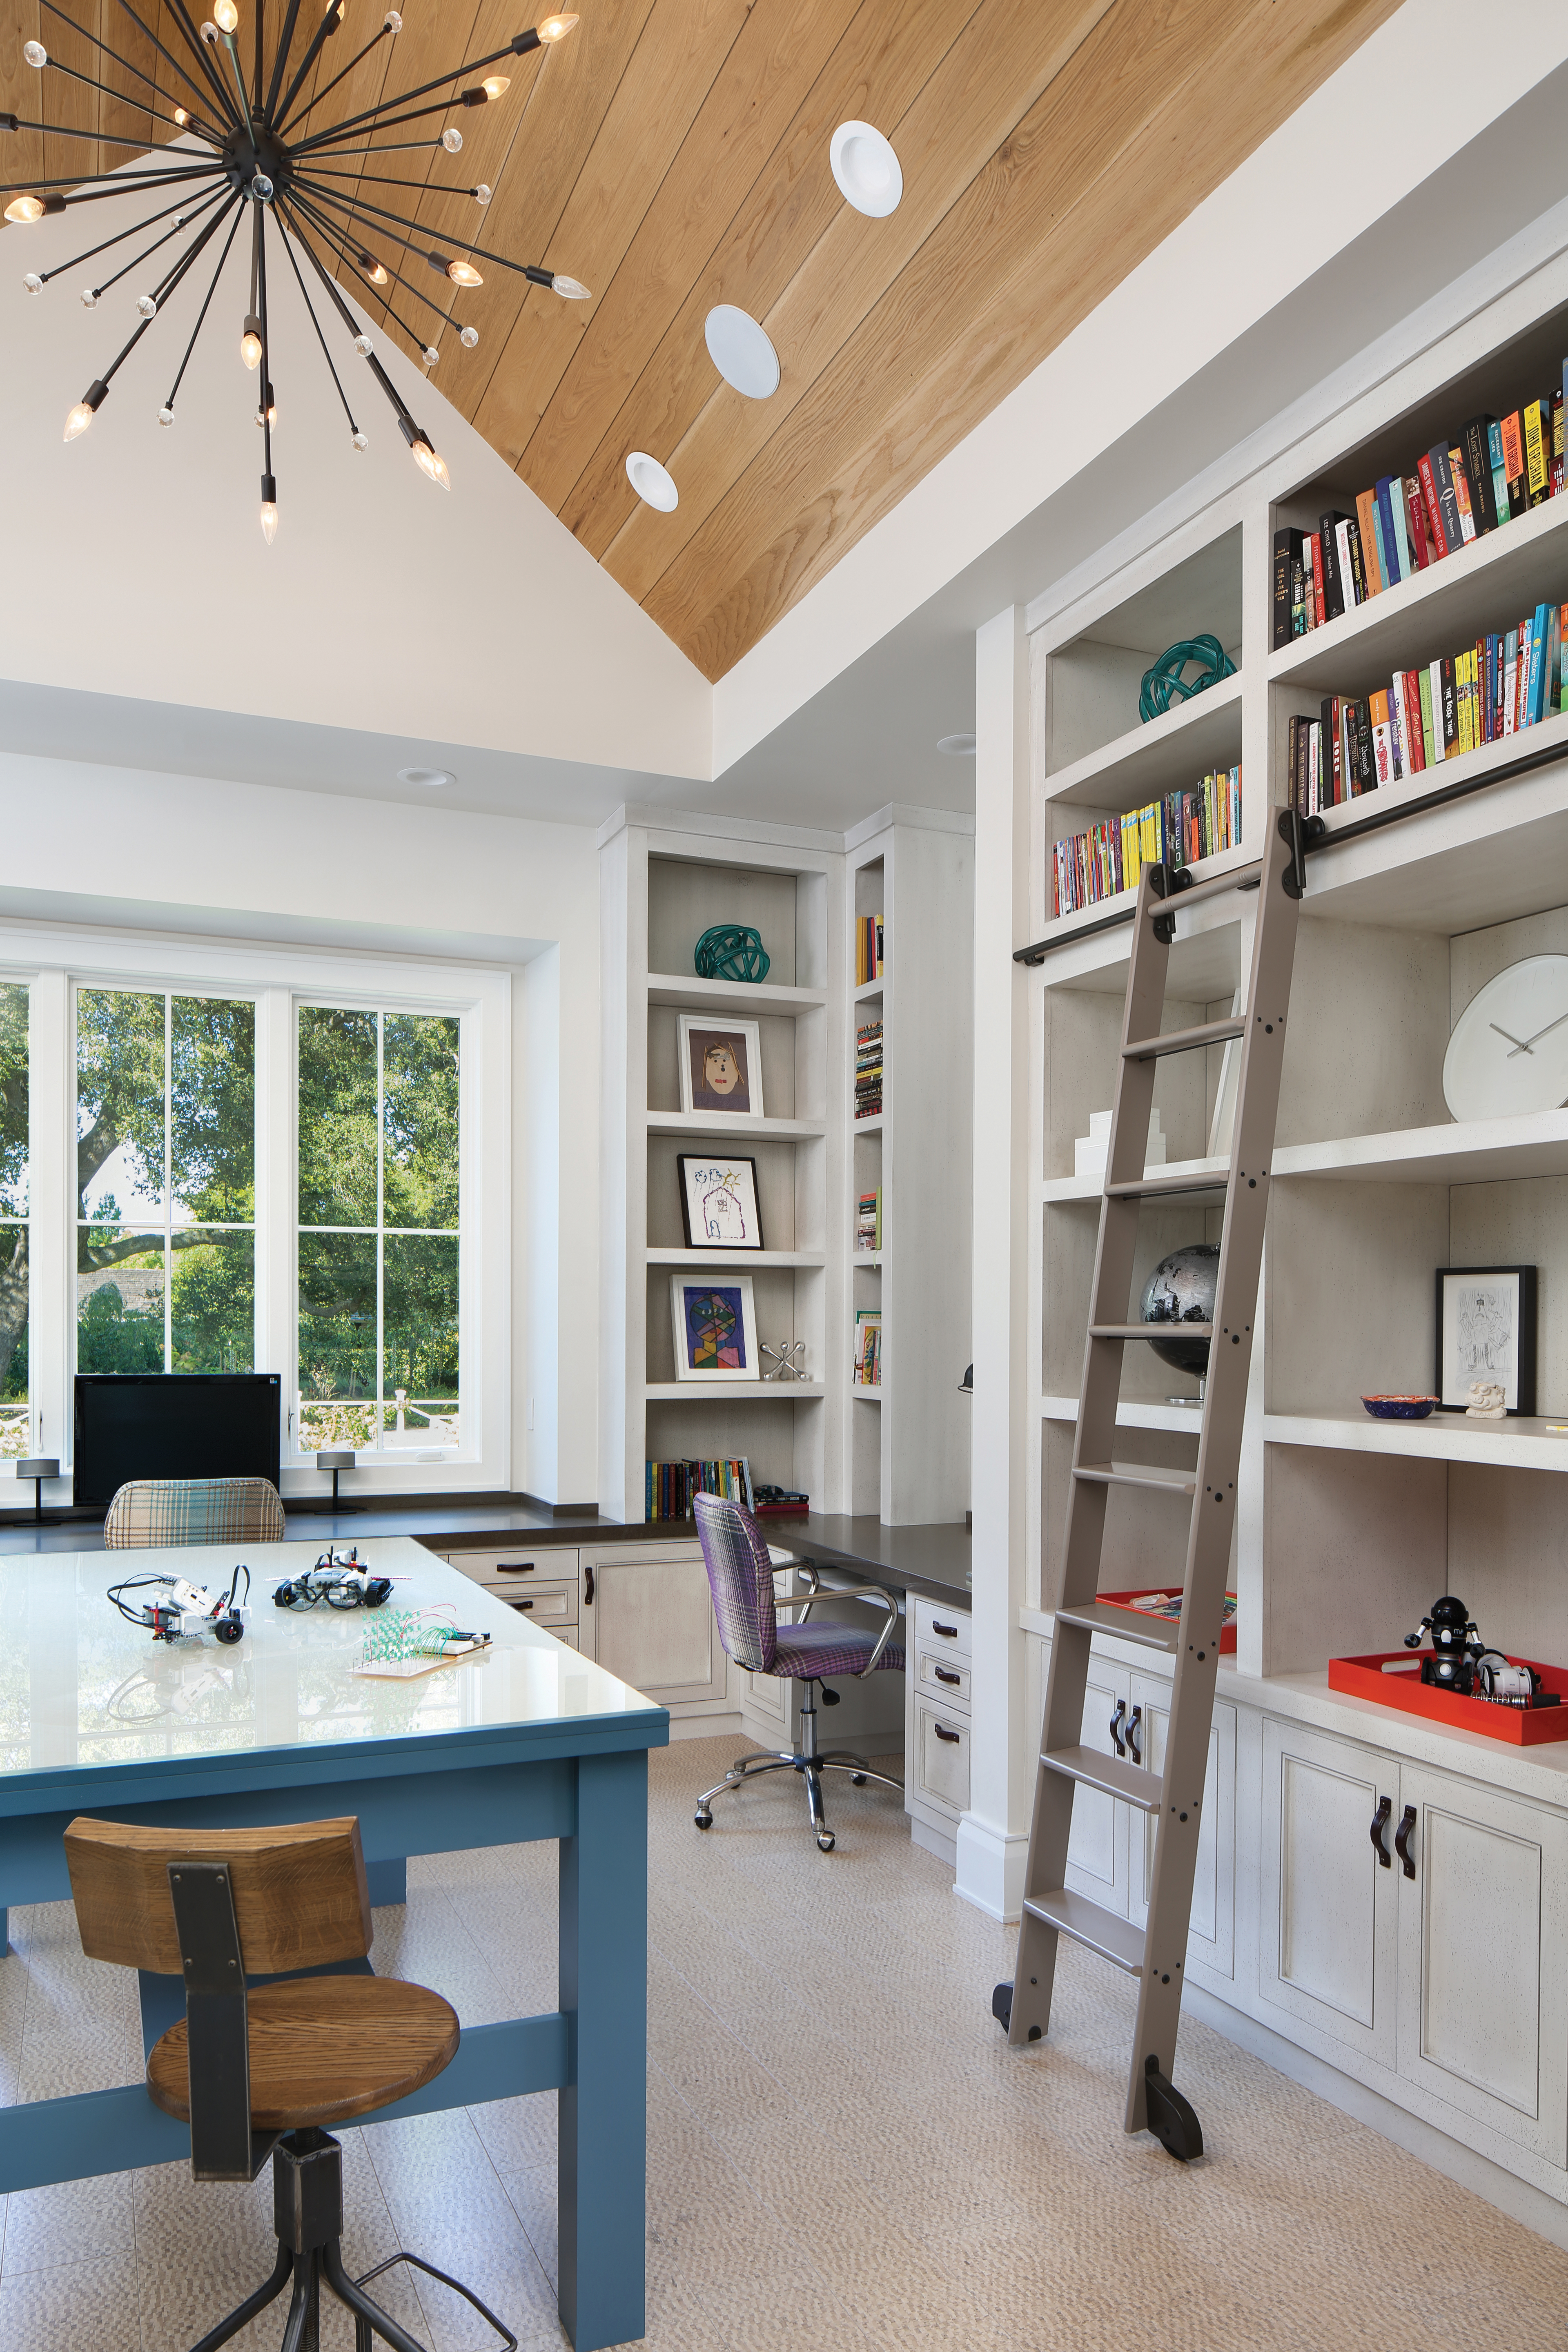 """Known as the project and study room, this unique space provides plenty of space for work and play. There is a 3Form glass top island and Caesarstone top desks, as well as pottery barn desk chairs with Osborn & Little fabric. """"This family,creative and playful at heart, can work on projects or puzzles on the large indestructible glass laminated island that was designed with science projects in mind,"""" Sullivan says. Built-in shelving, a wood vaulted ceiling, and cork flooring gives this space a creative touch."""